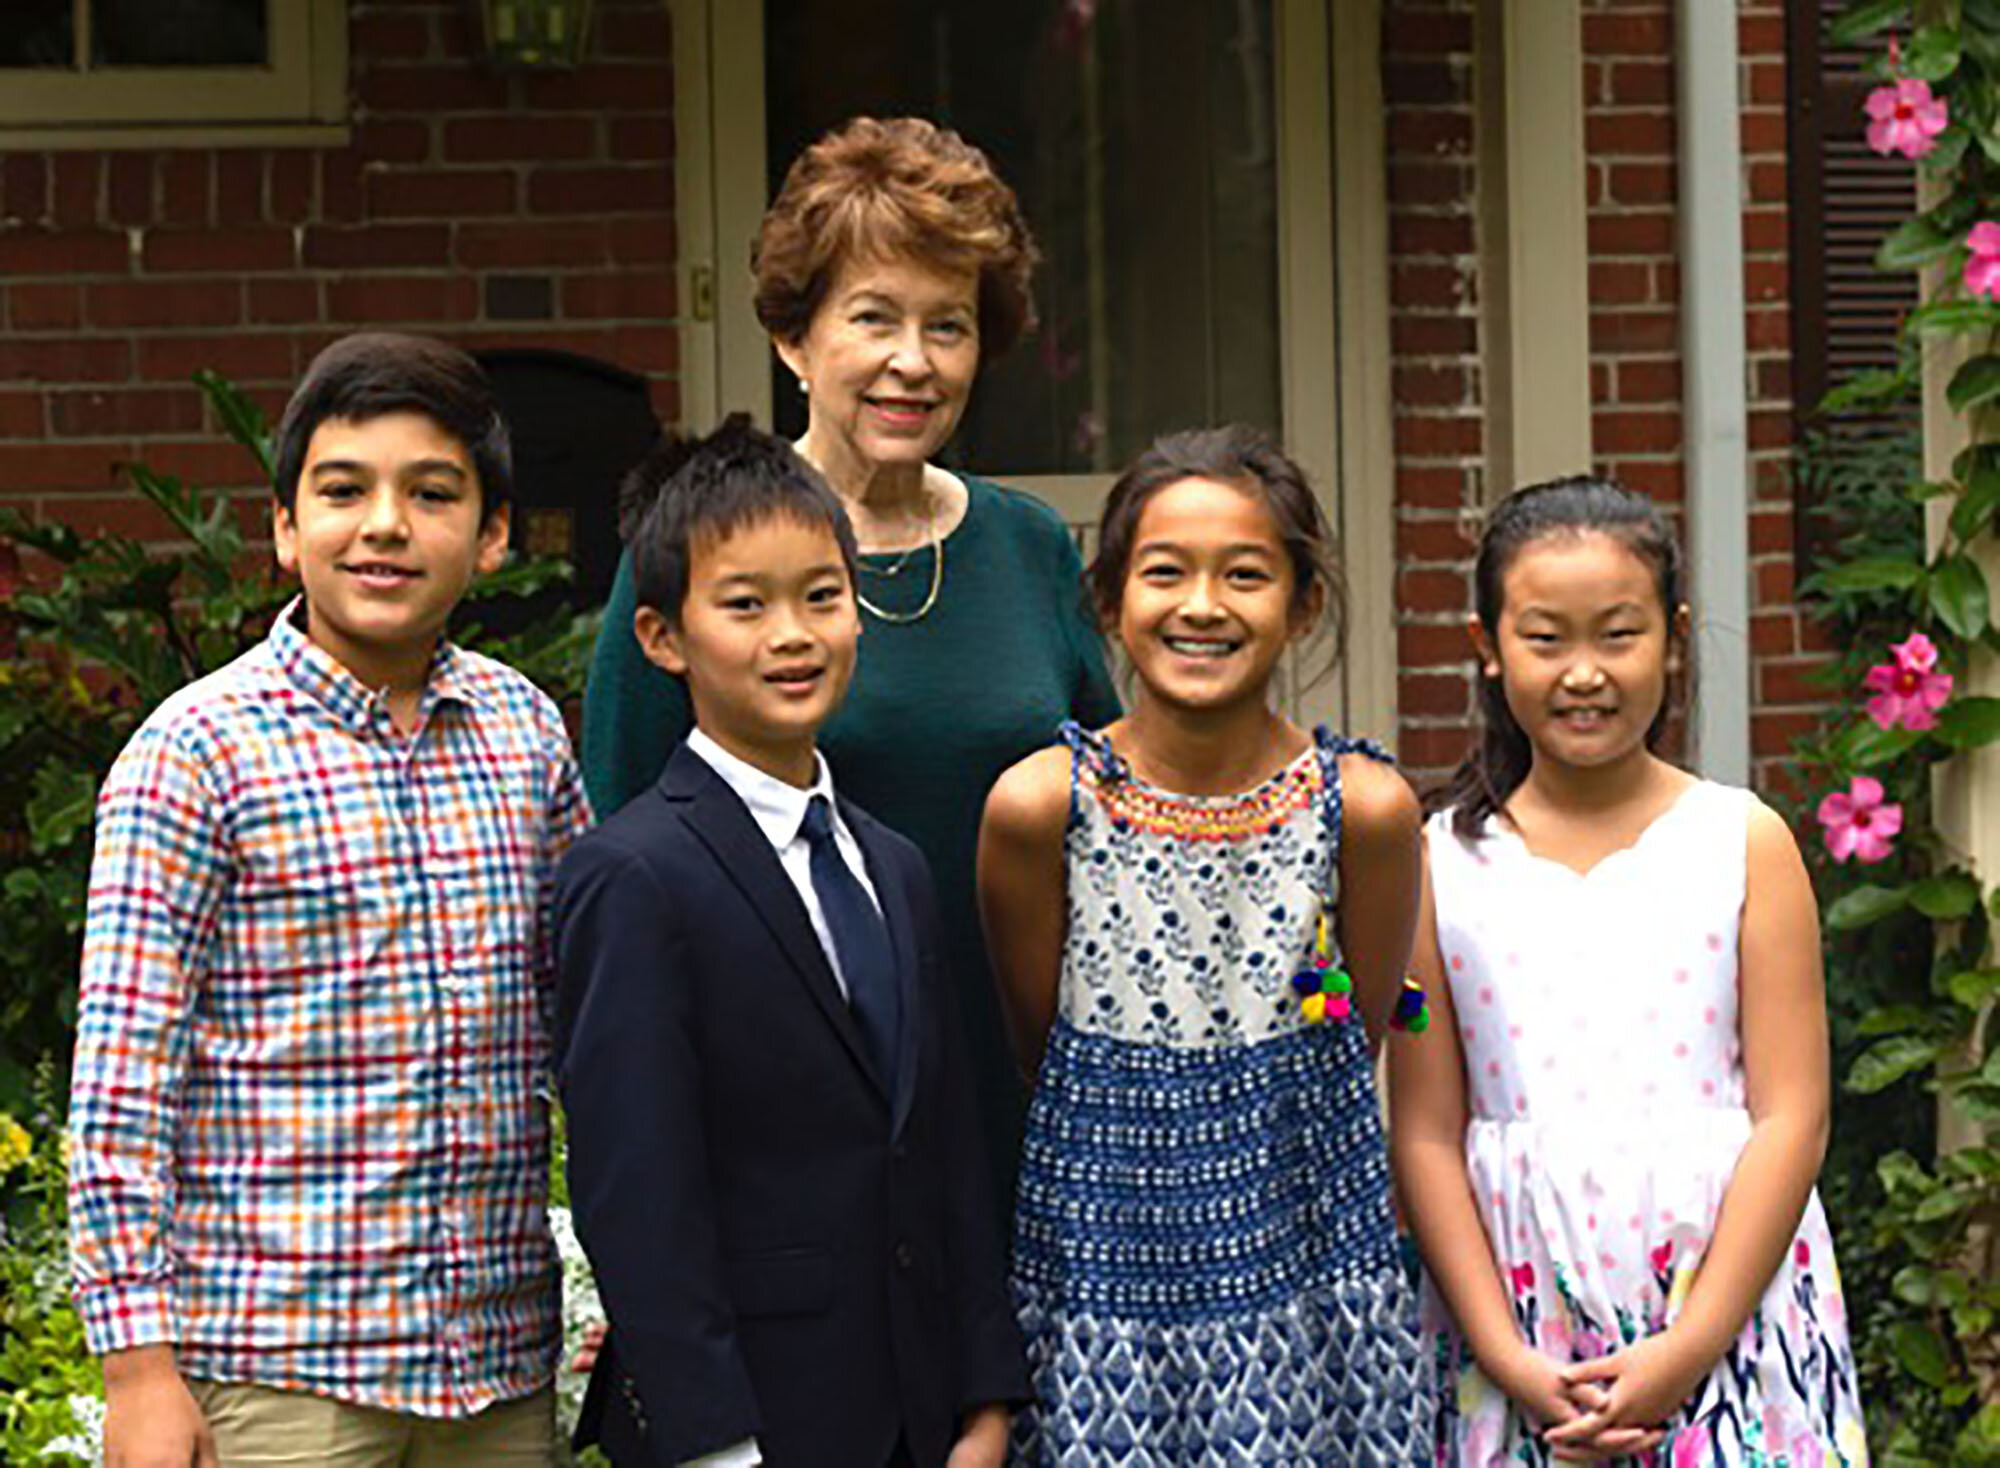 Piano teacher Donna Kay Jones stands behind her students (left to right) Ted Clark, Vincent Zhu, Daksha Nair, and Shannon Yue.